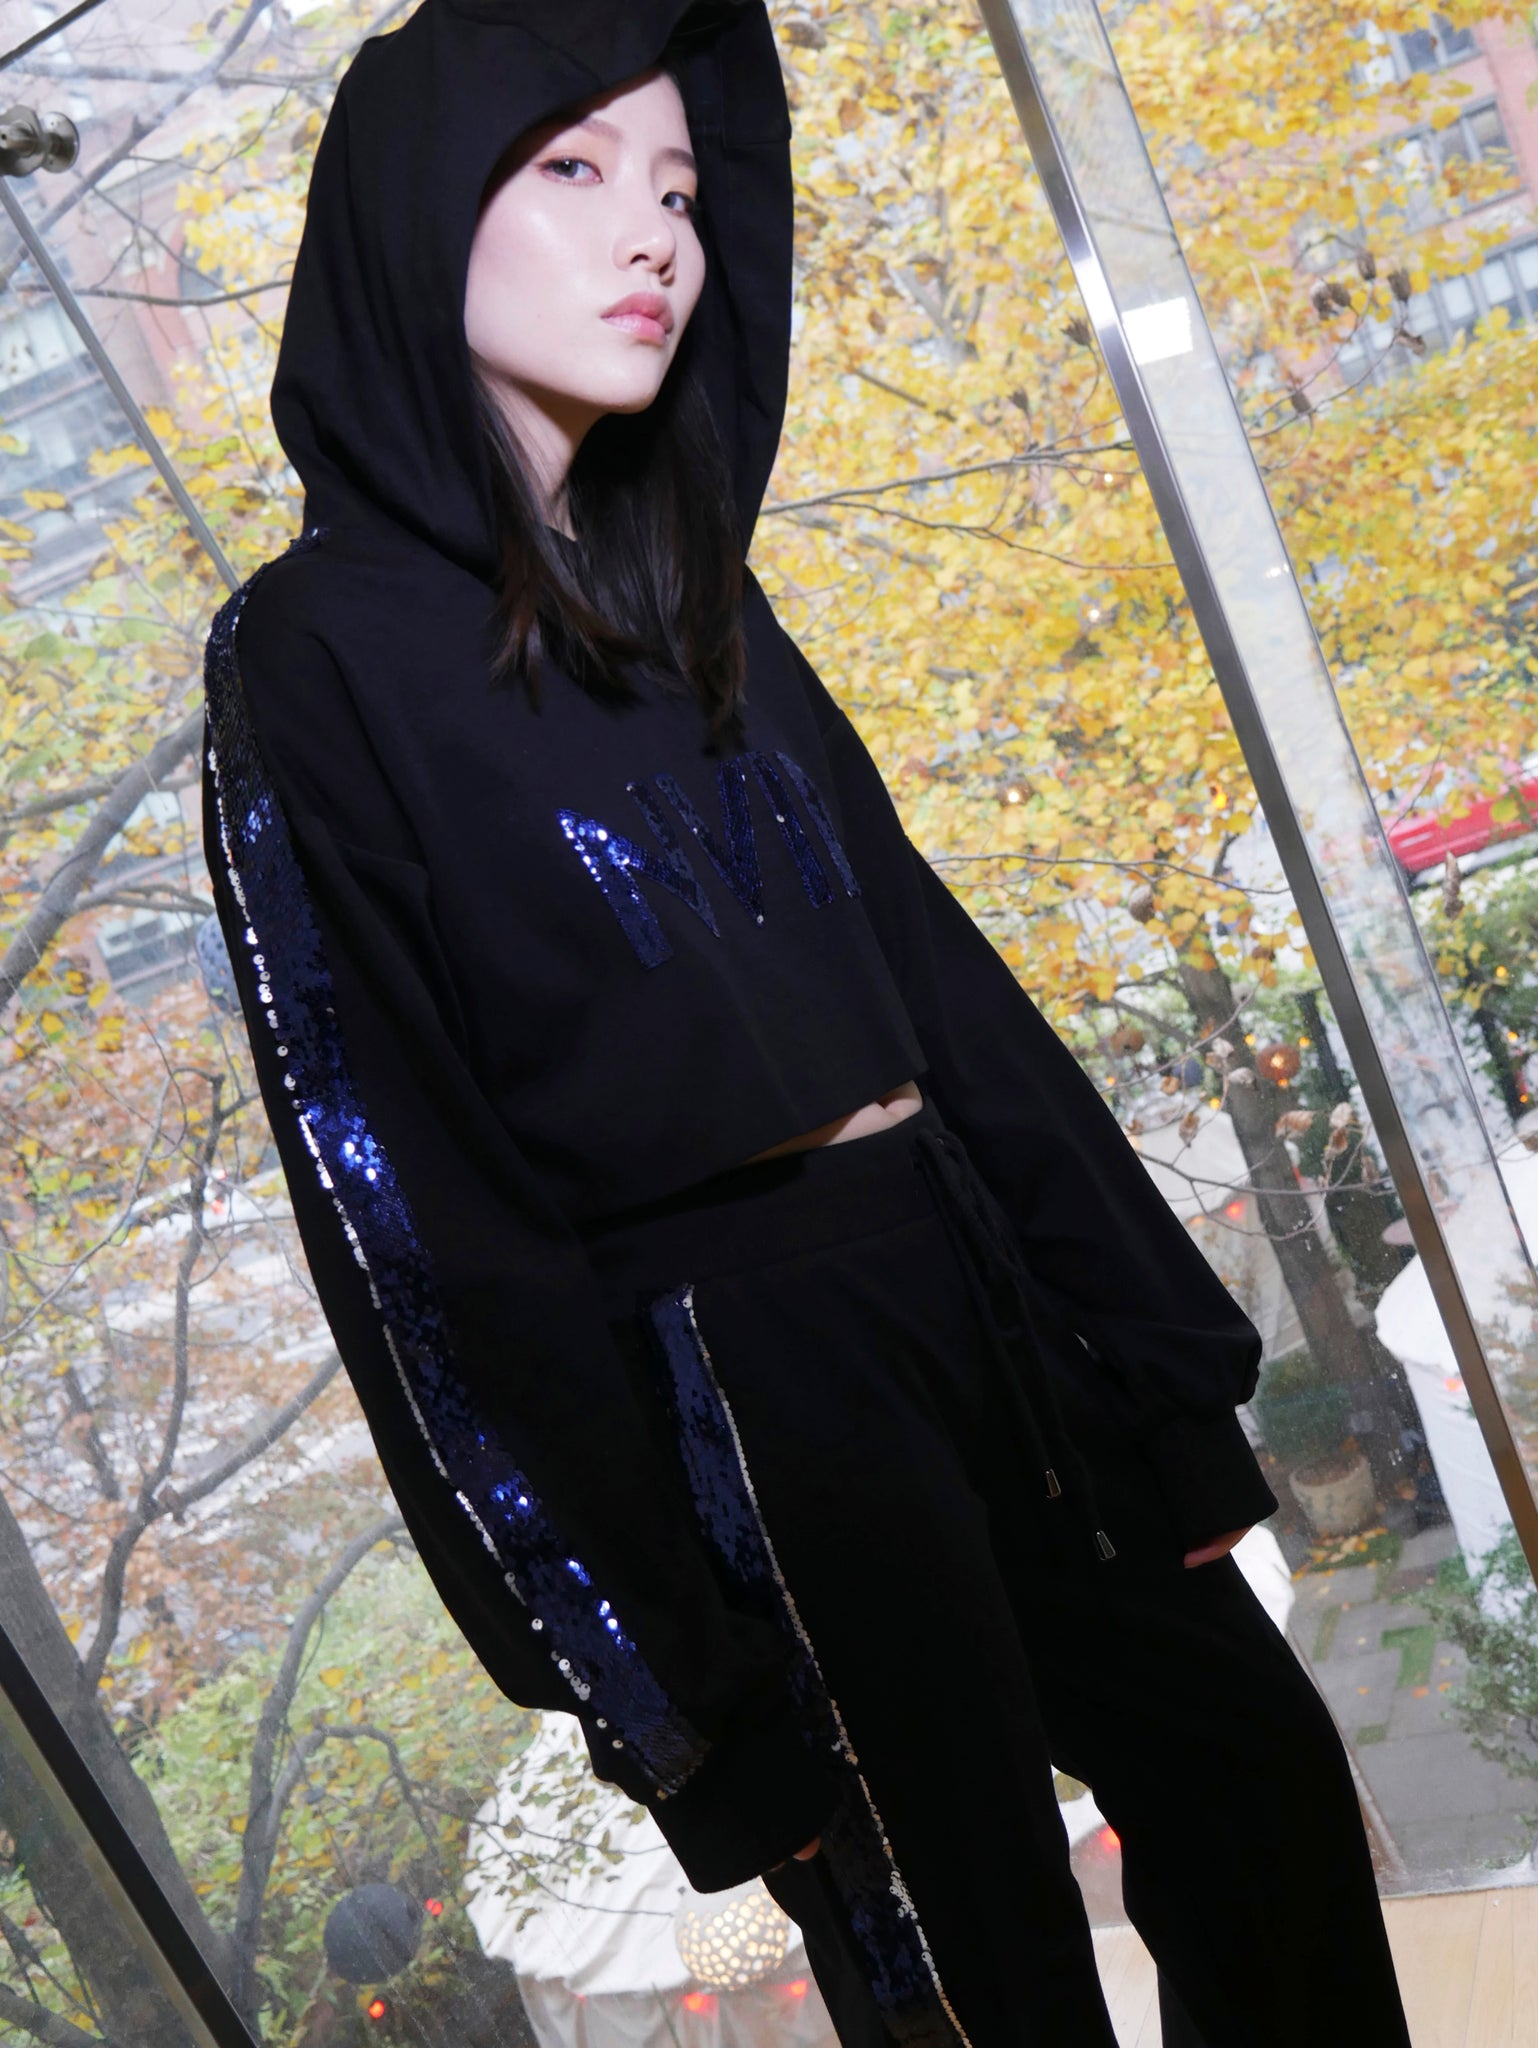 NOMAD VII - NVII SEQUIN HOODED CROP TOP - NOMAD VII X ANNE BOWEN